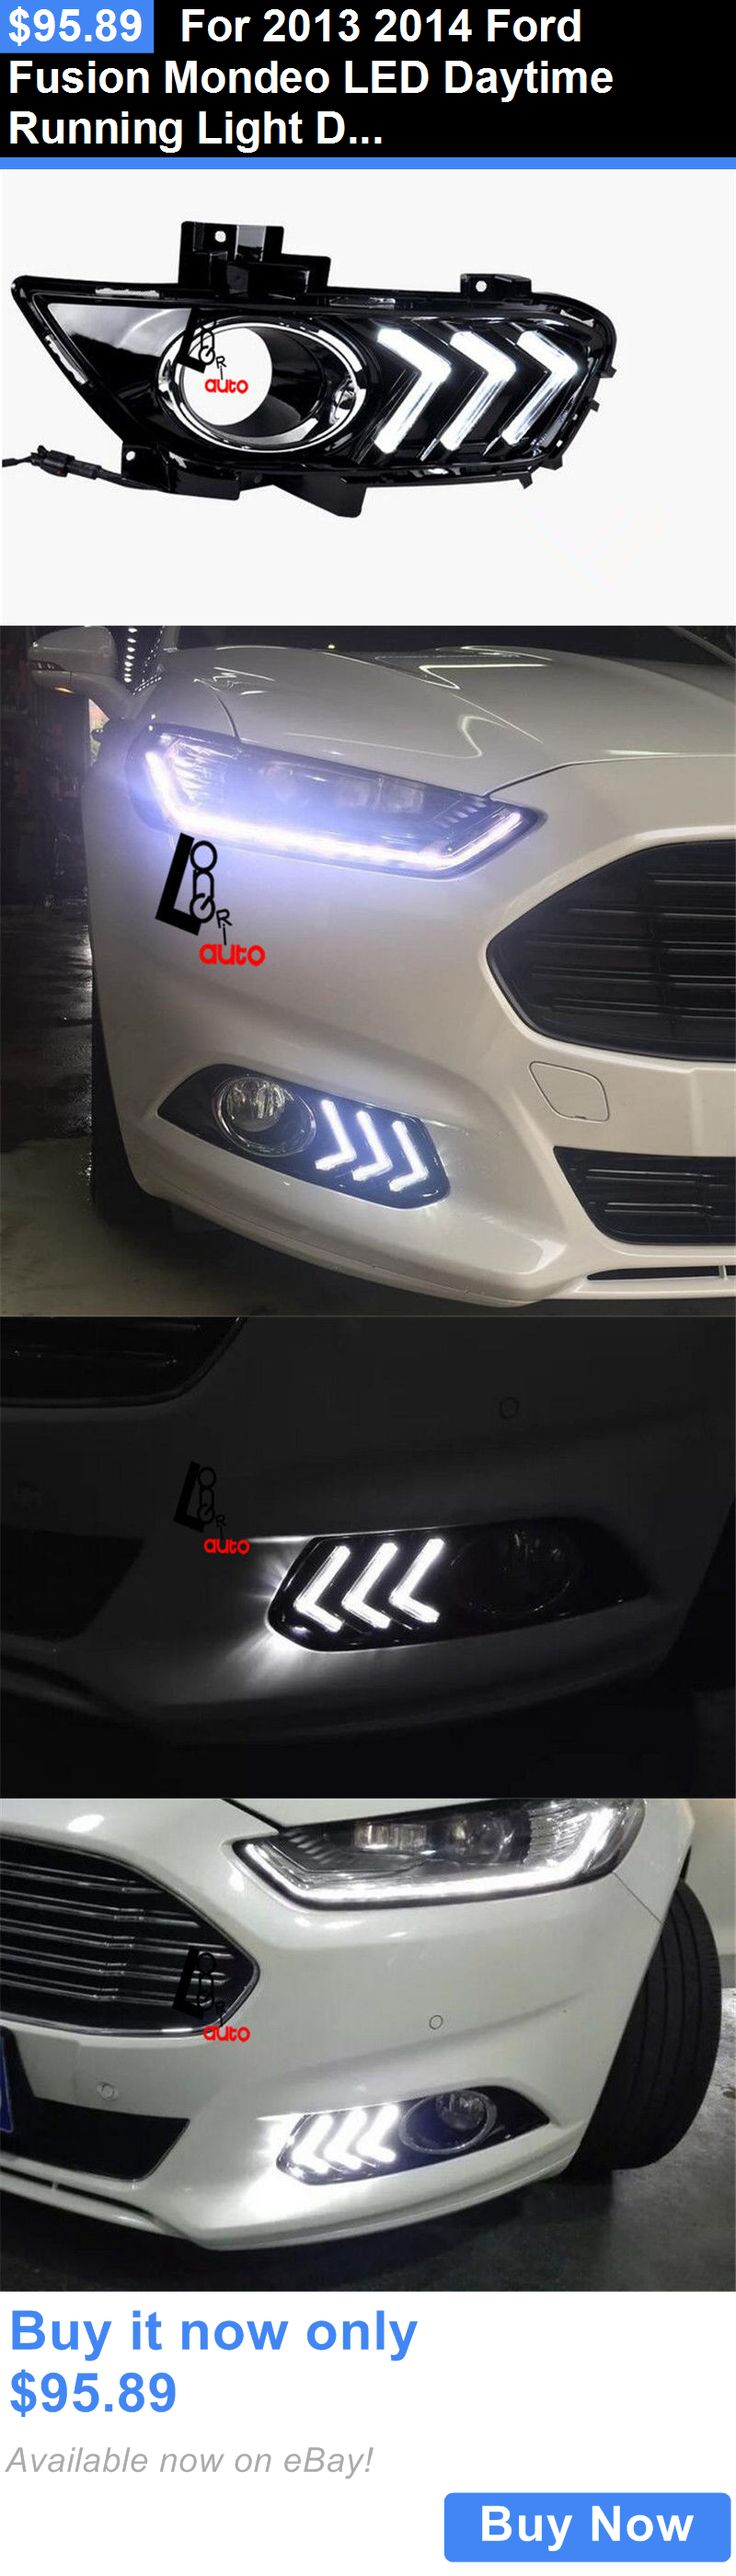 Motors Parts And Accessories: For 2013 2014 Ford Fusion Mondeo Led Daytime Running Light Drl Fog Lamp Kit-New BUY IT NOW ONLY: $95.89